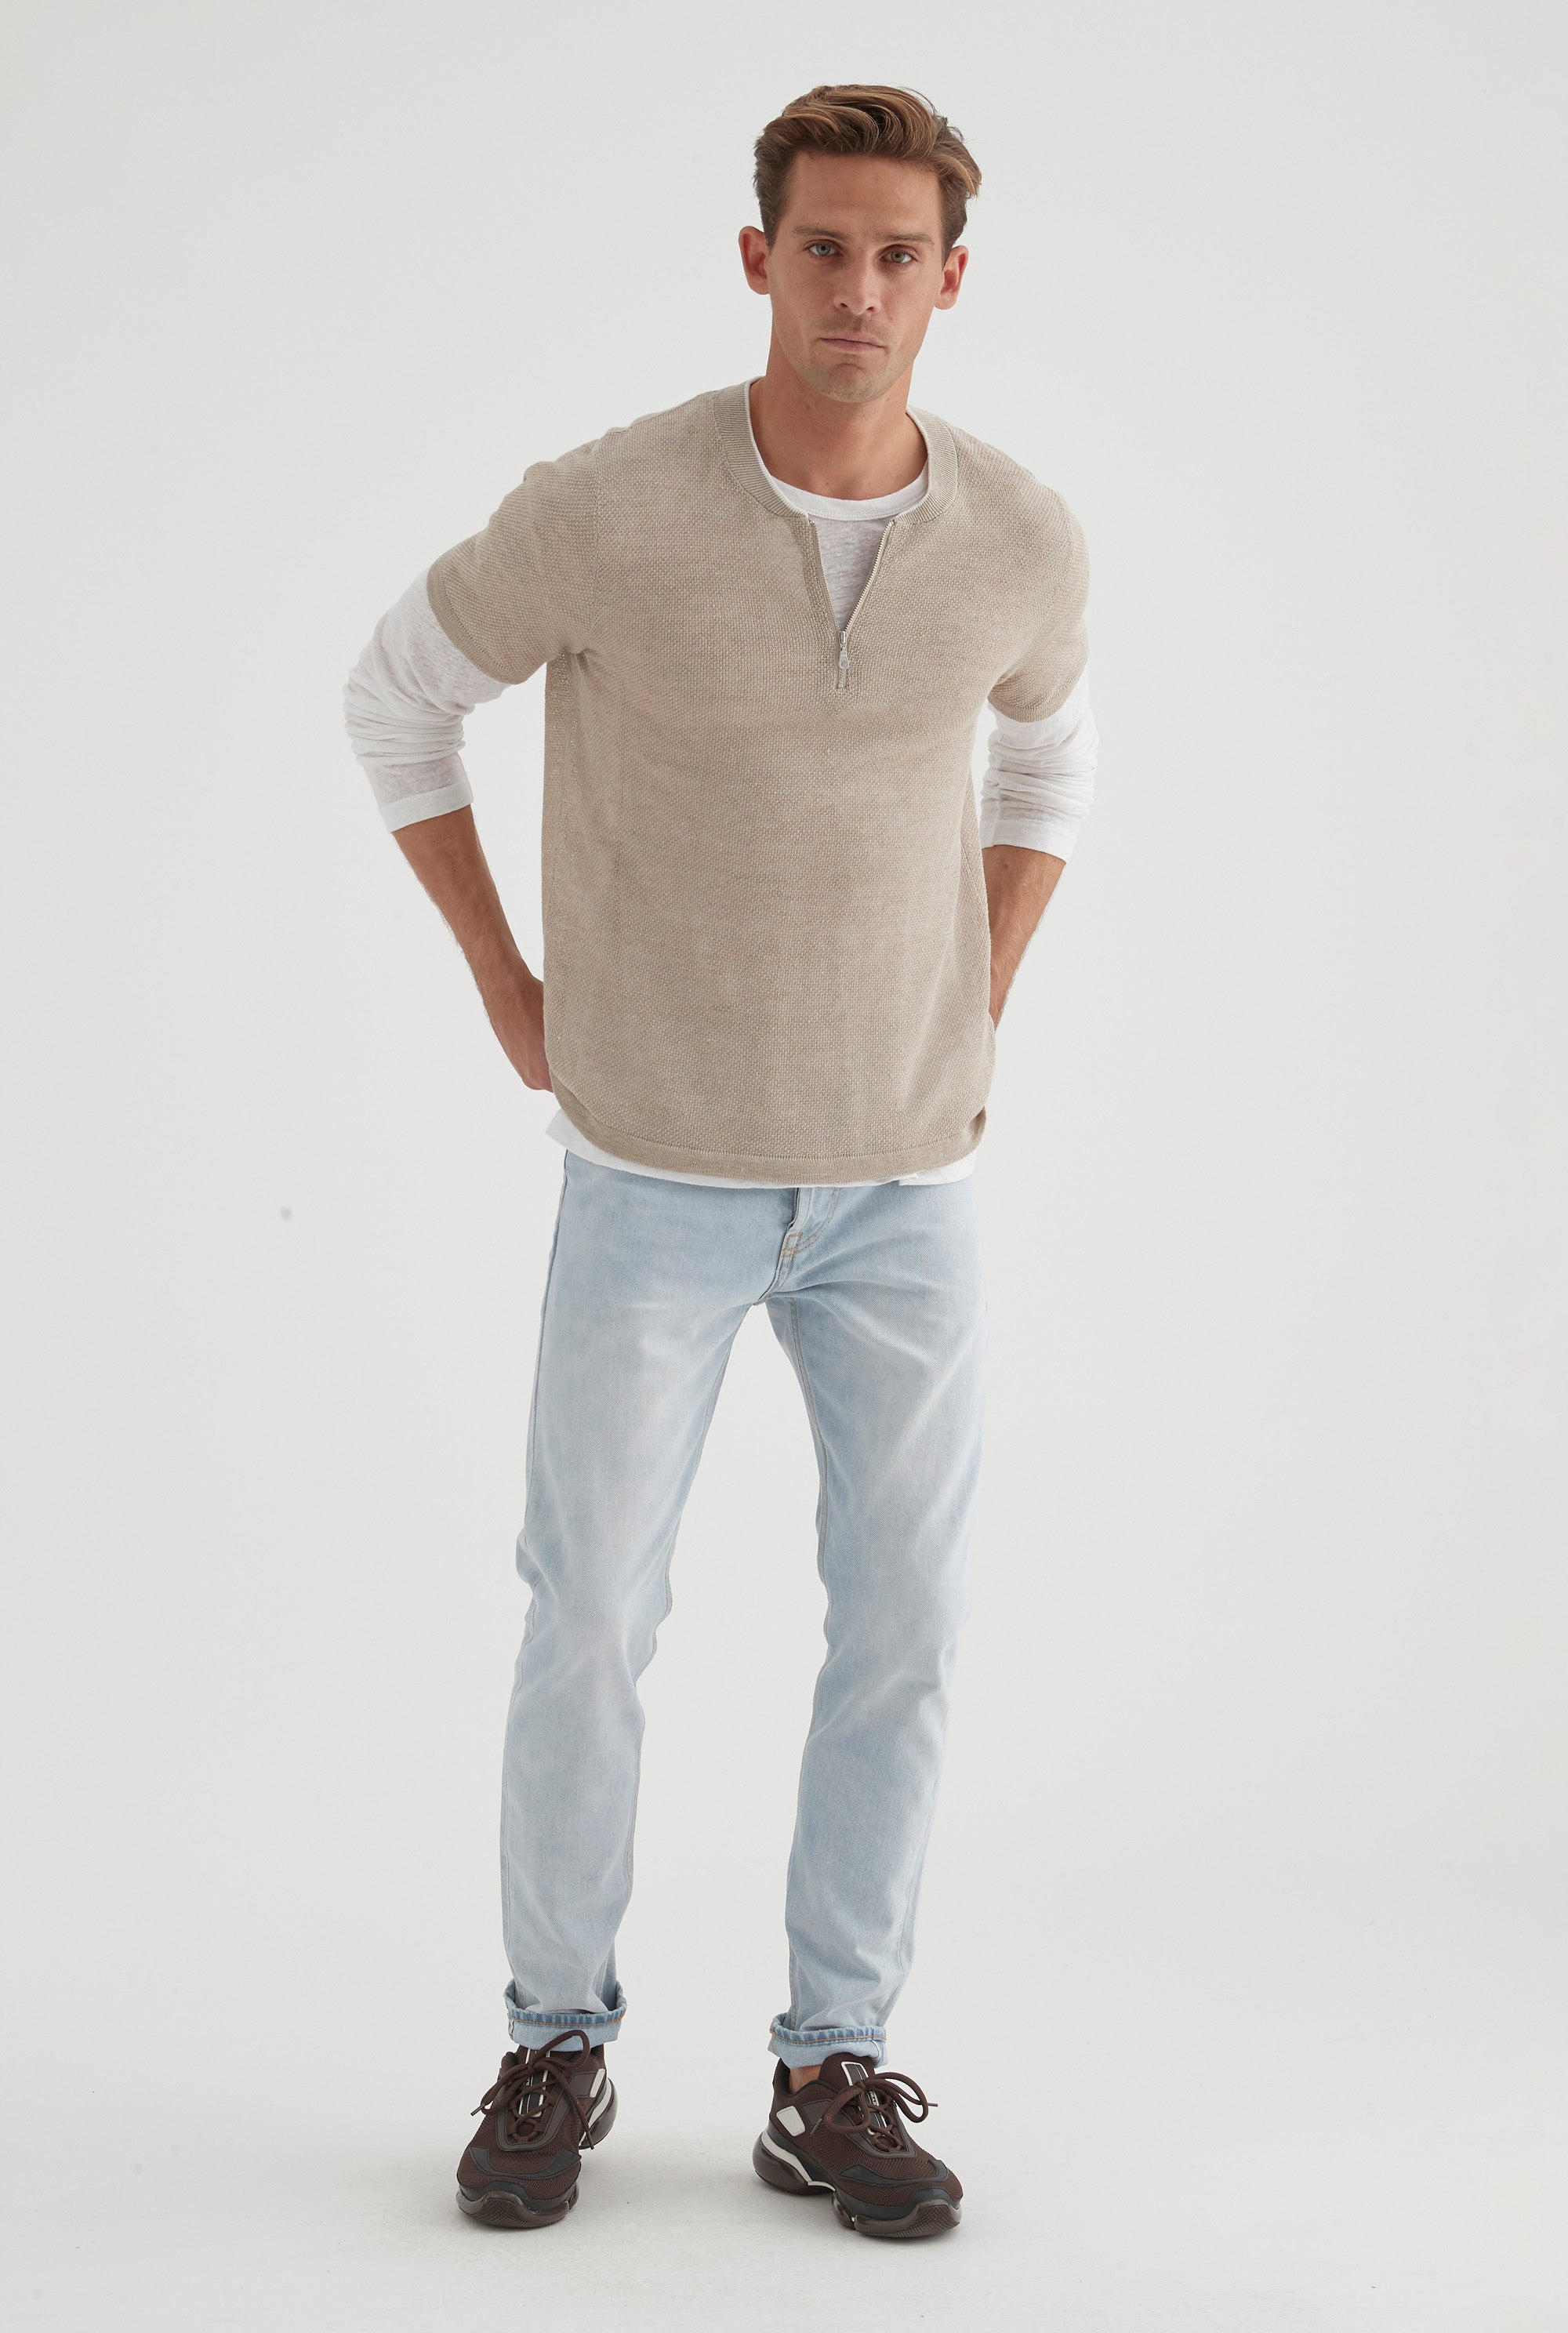 Knitted Zip Collar T-Shirt - Taupe/White Tip